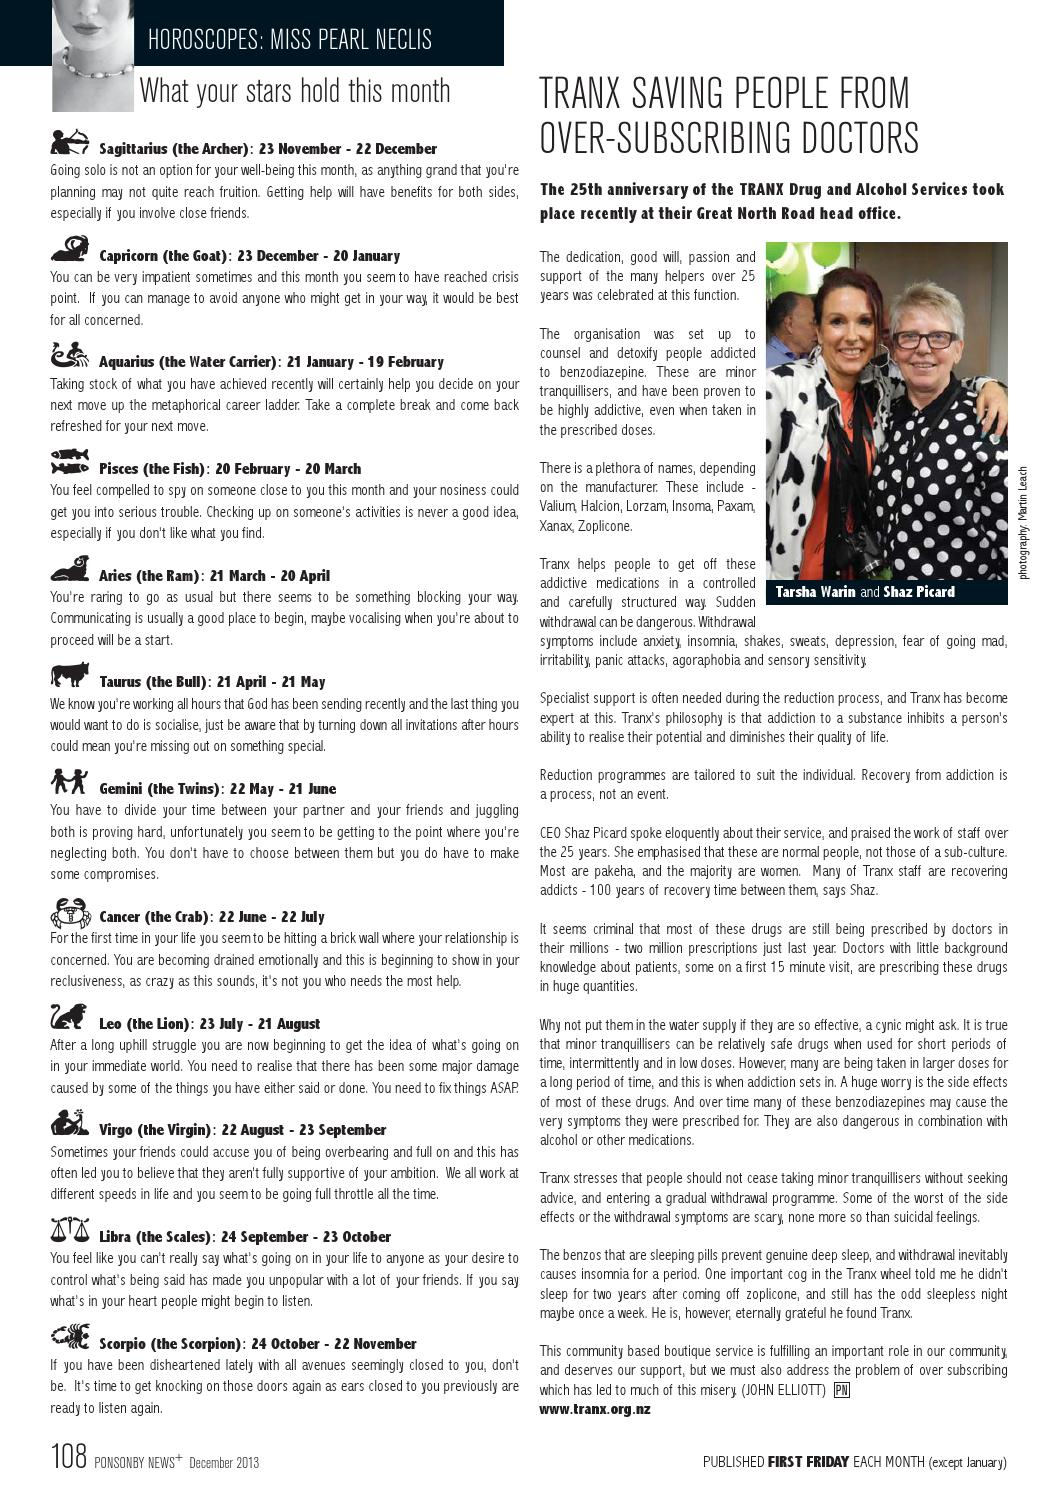 PONSONBY NEWS - DECEMBER'13 by Ponsonby News - issuu